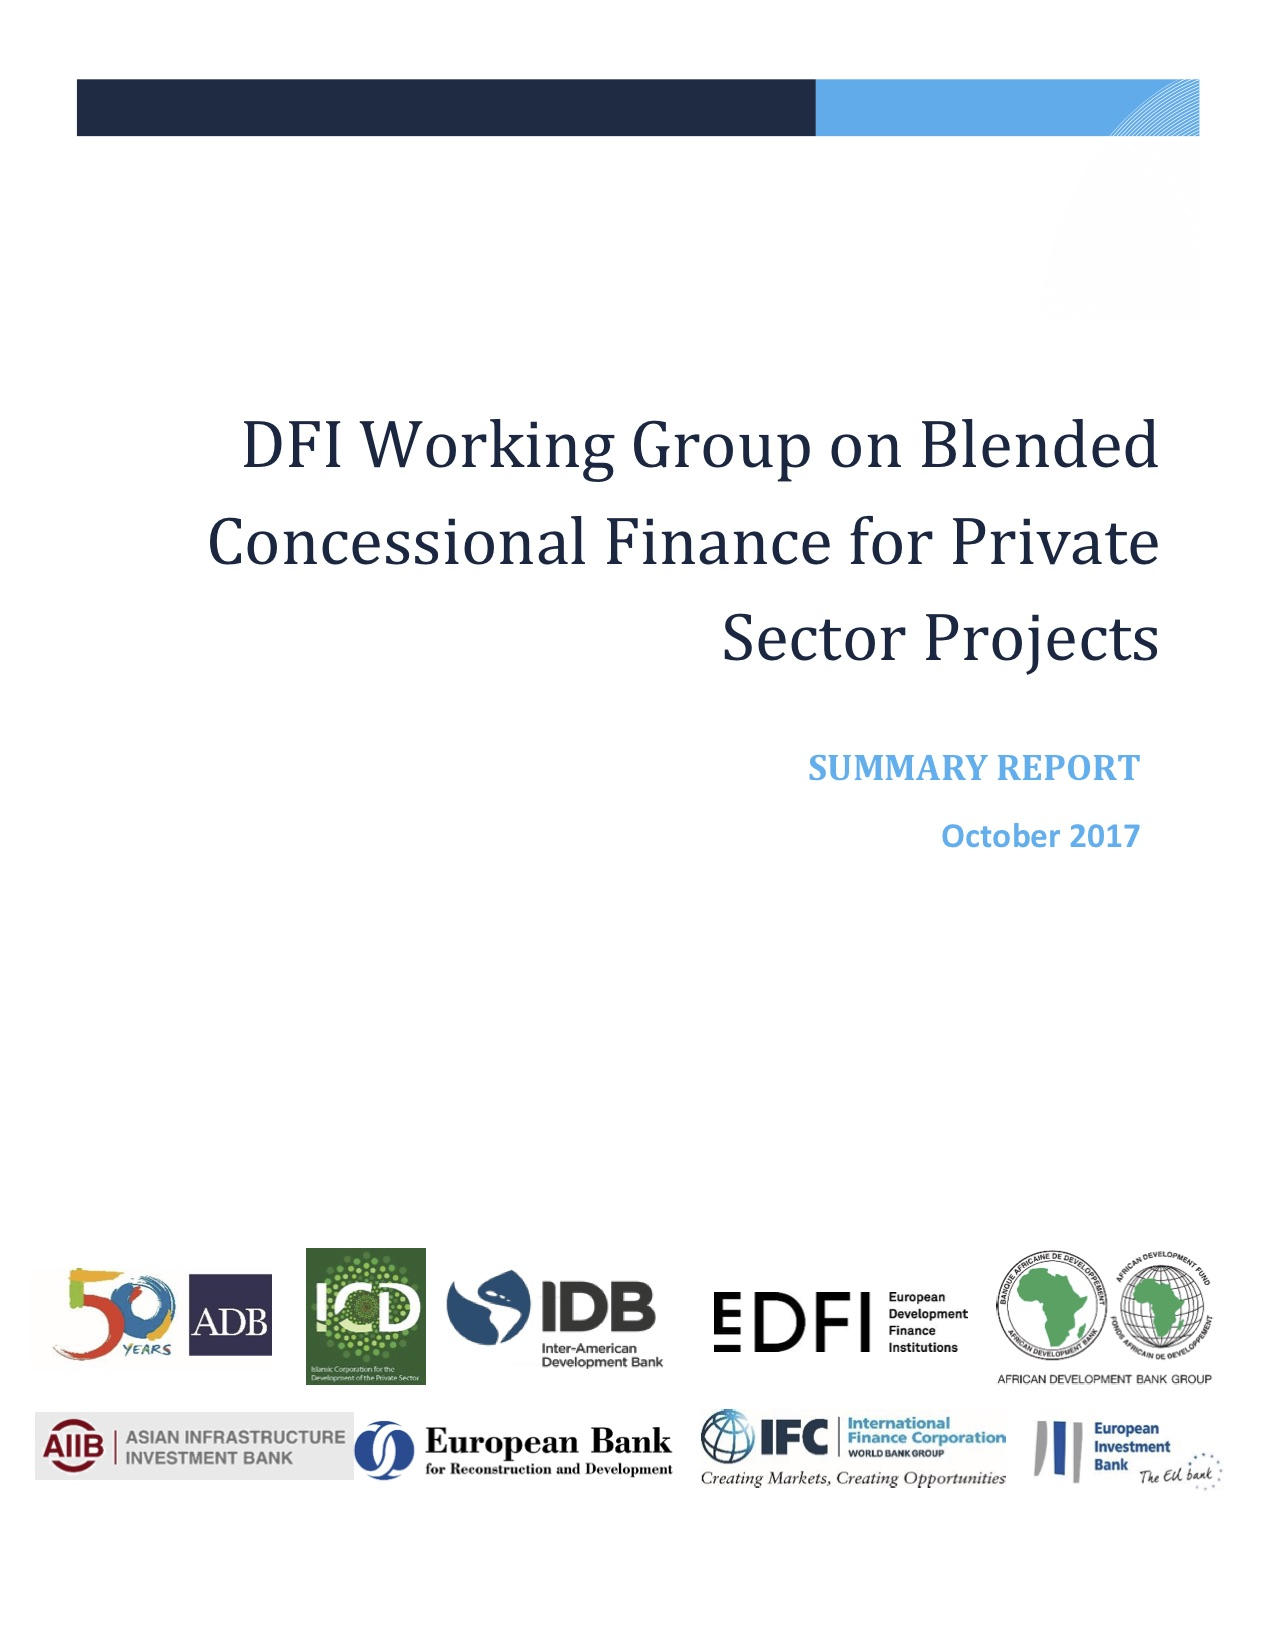 DFI Working Group on Blended Concessional Finance for Private Sector Projects